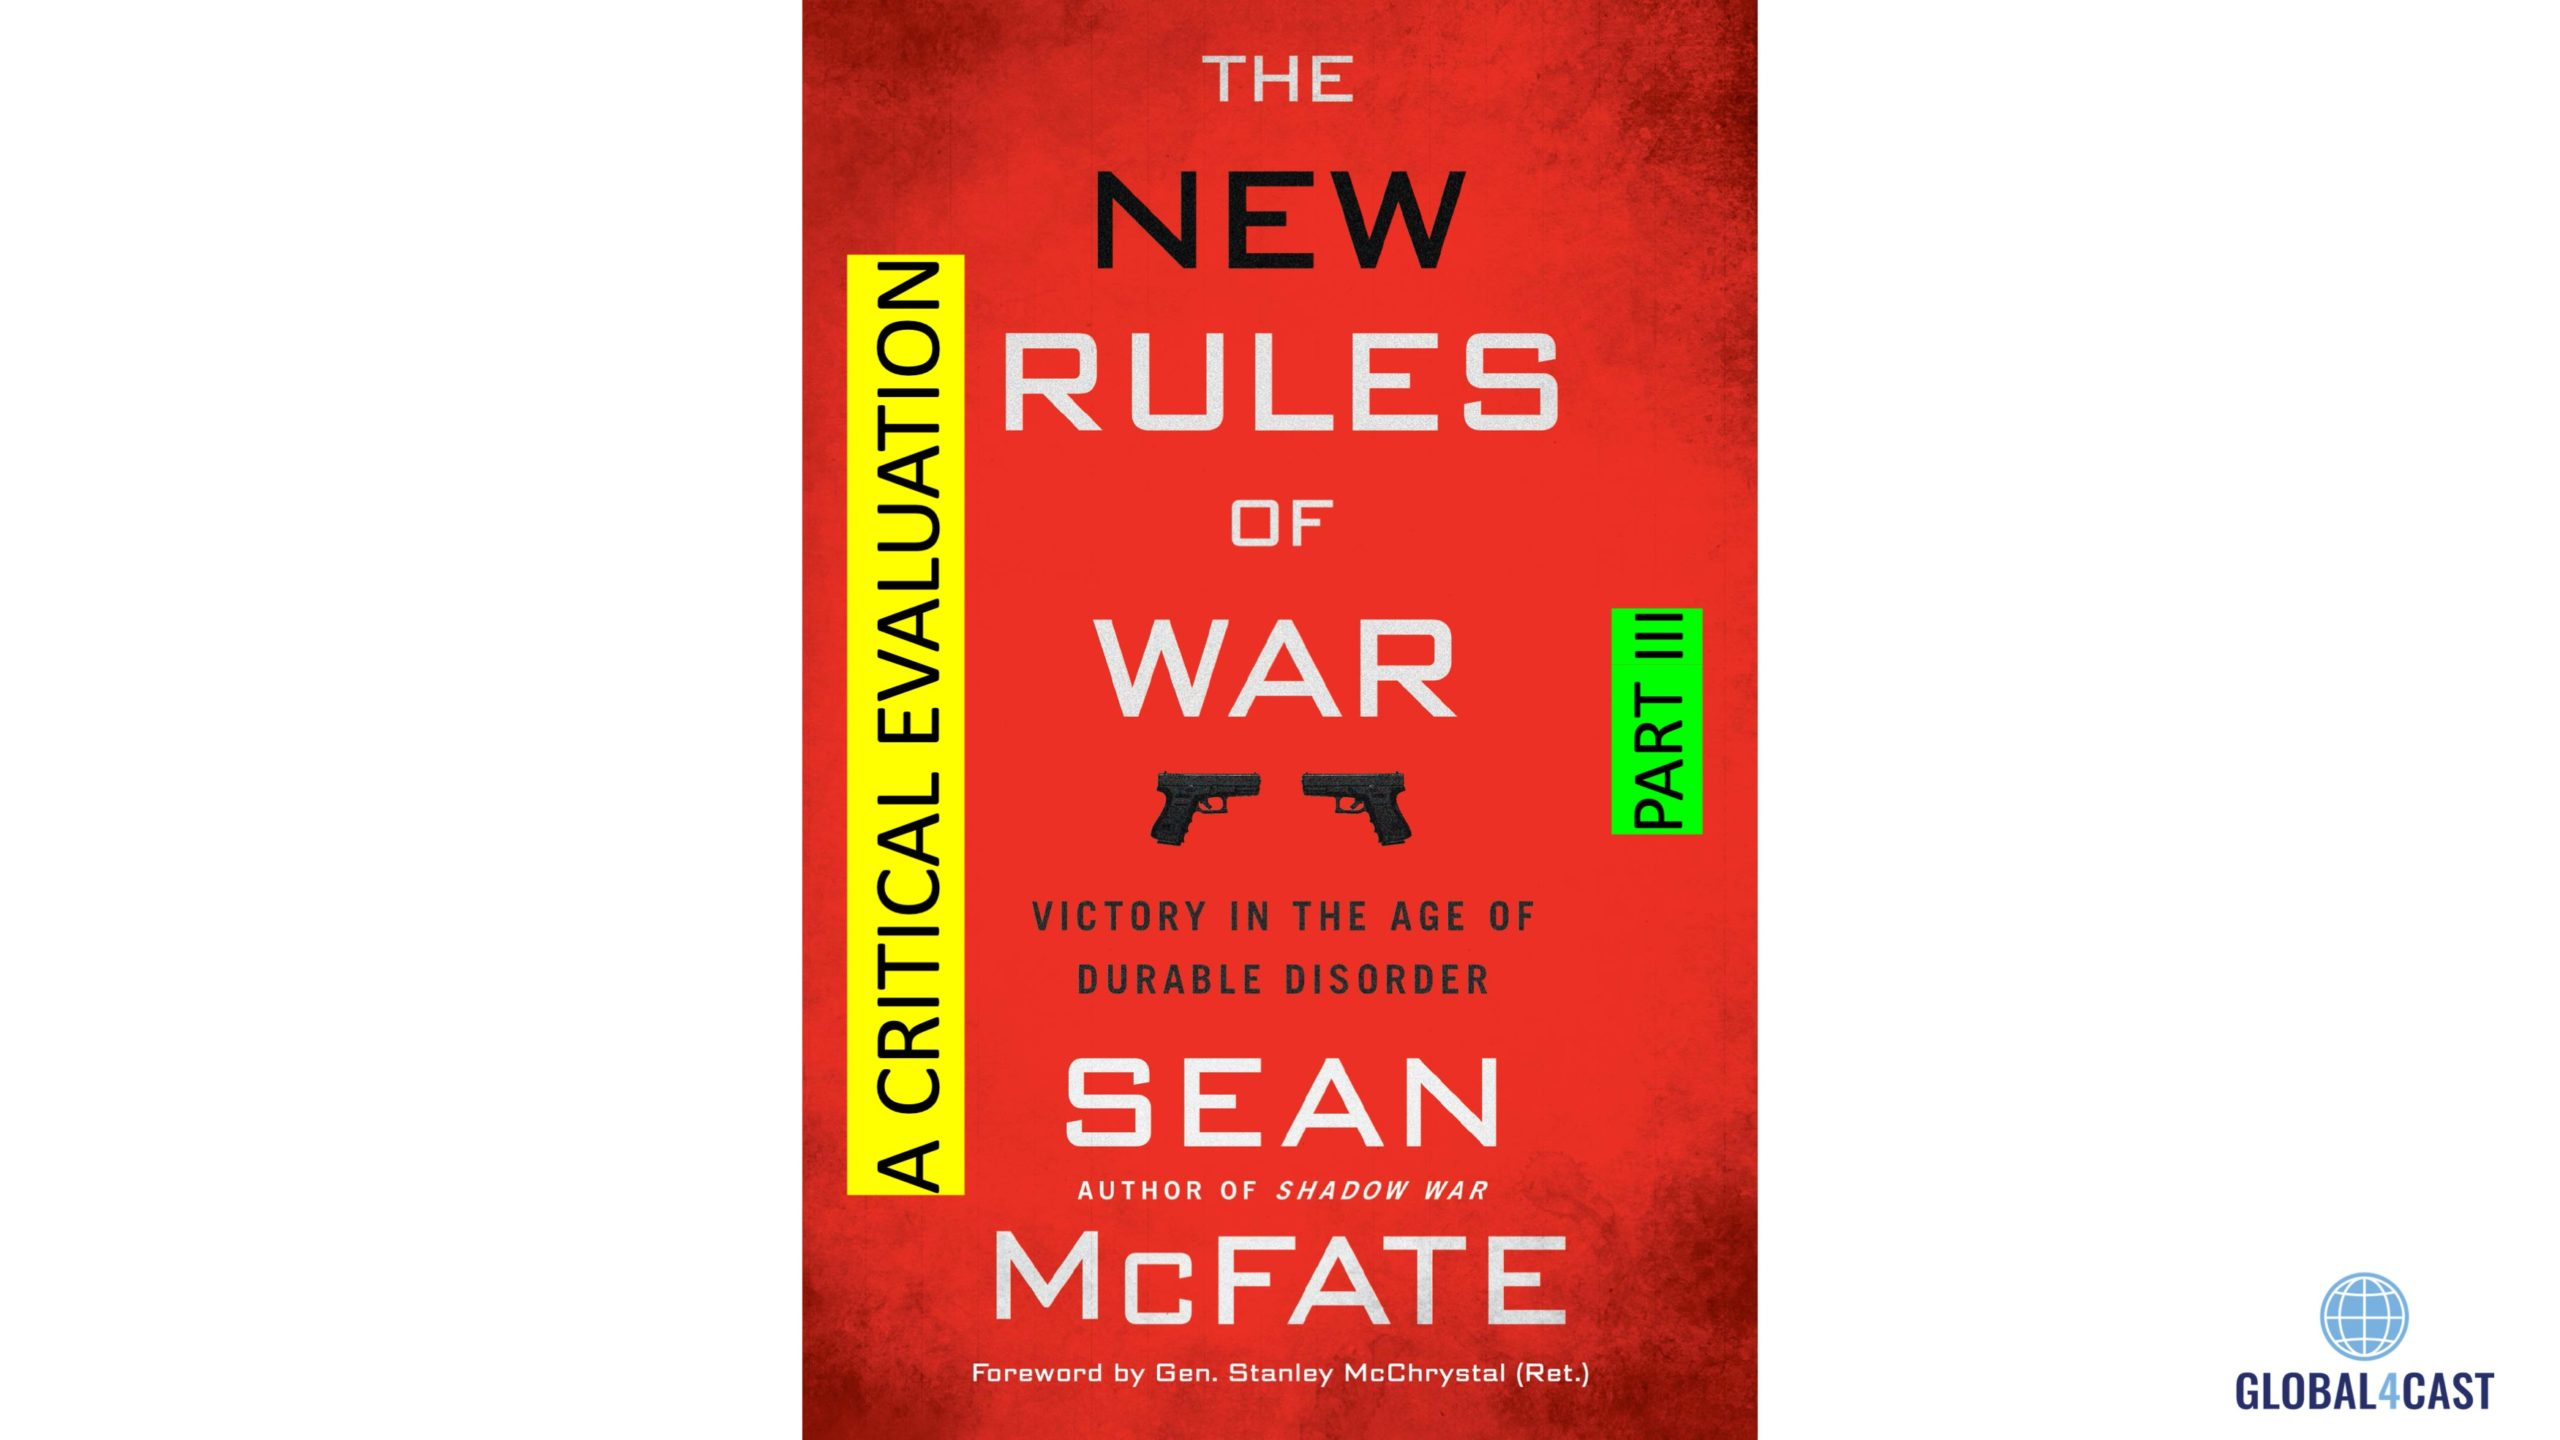 """A CRITICAL EVALUATION OF """"THE NEW RULES OF WAR, VICTORY IN THE AGE OF DURABLE DISORDER"""", PART III"""